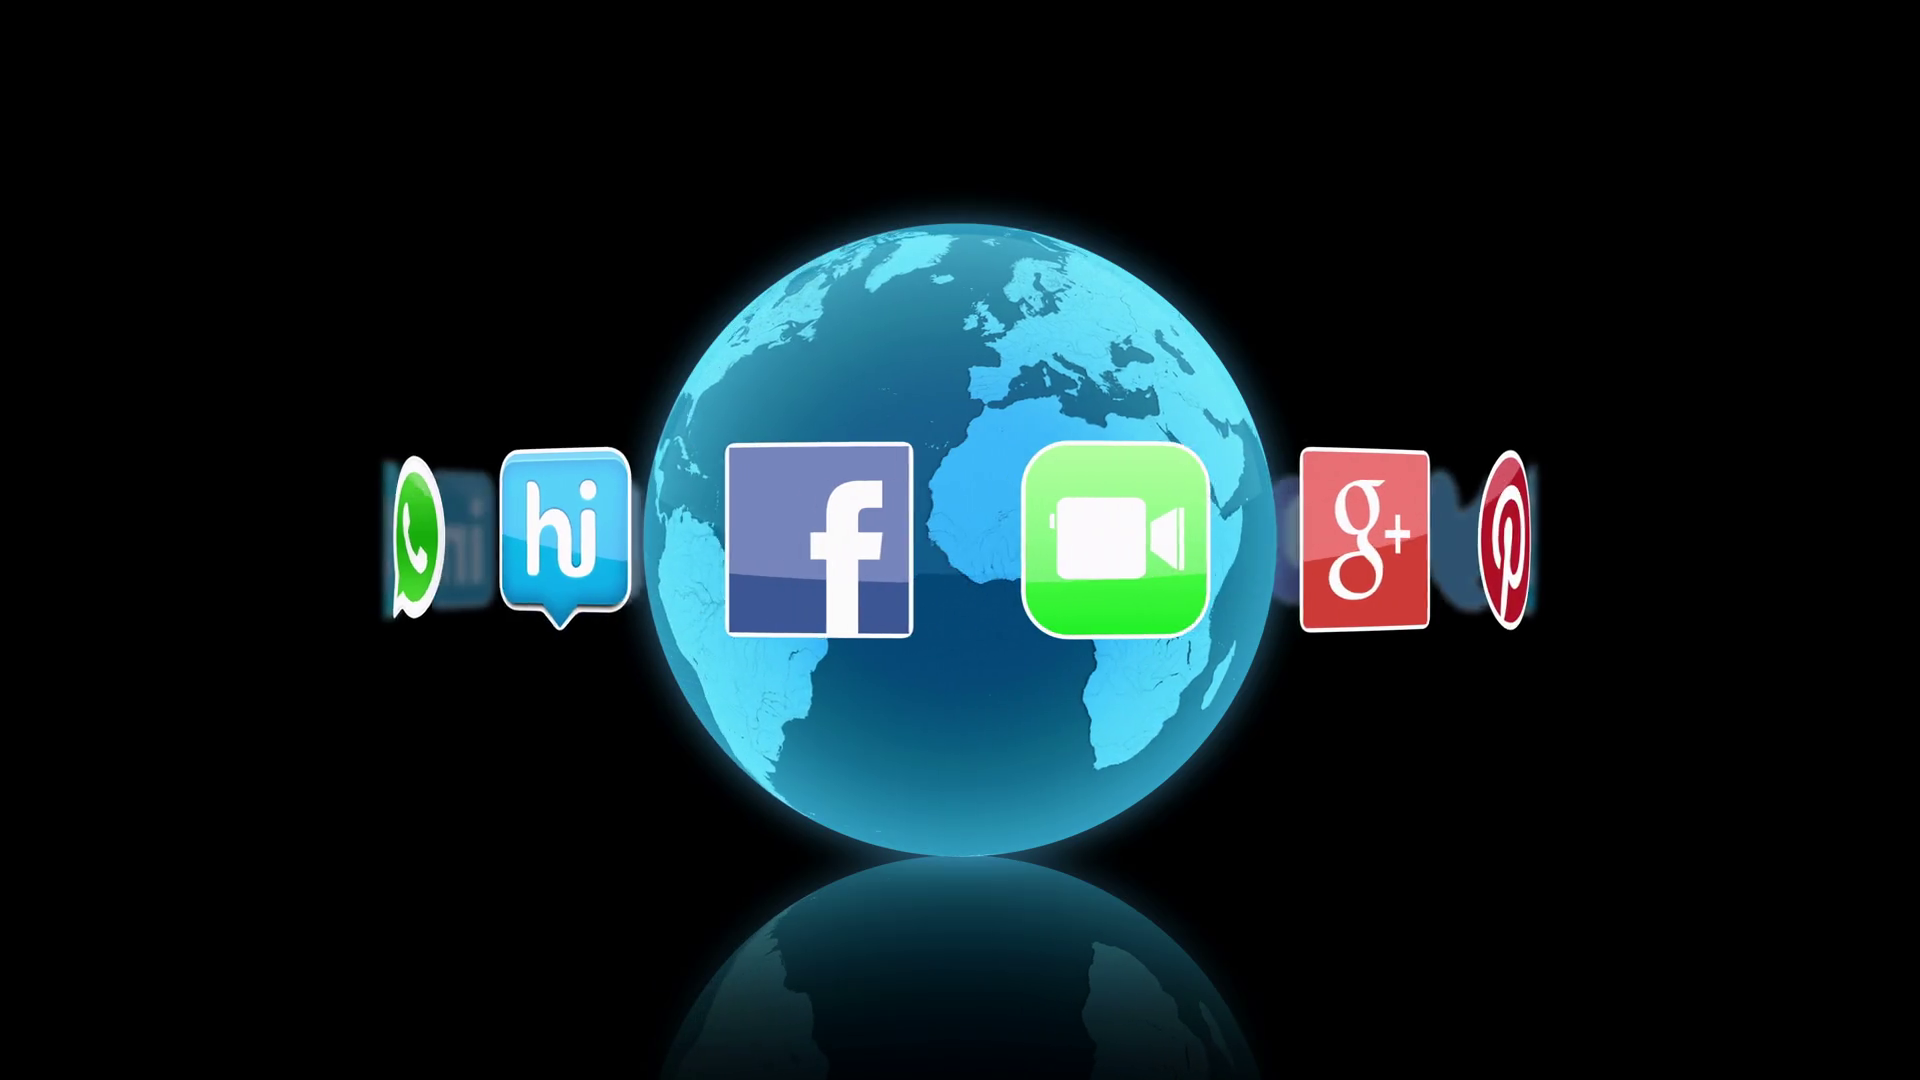 Social Media Icons and Logos Spinning Around a 3D Globe - Black - Version 1 Motion Background ...